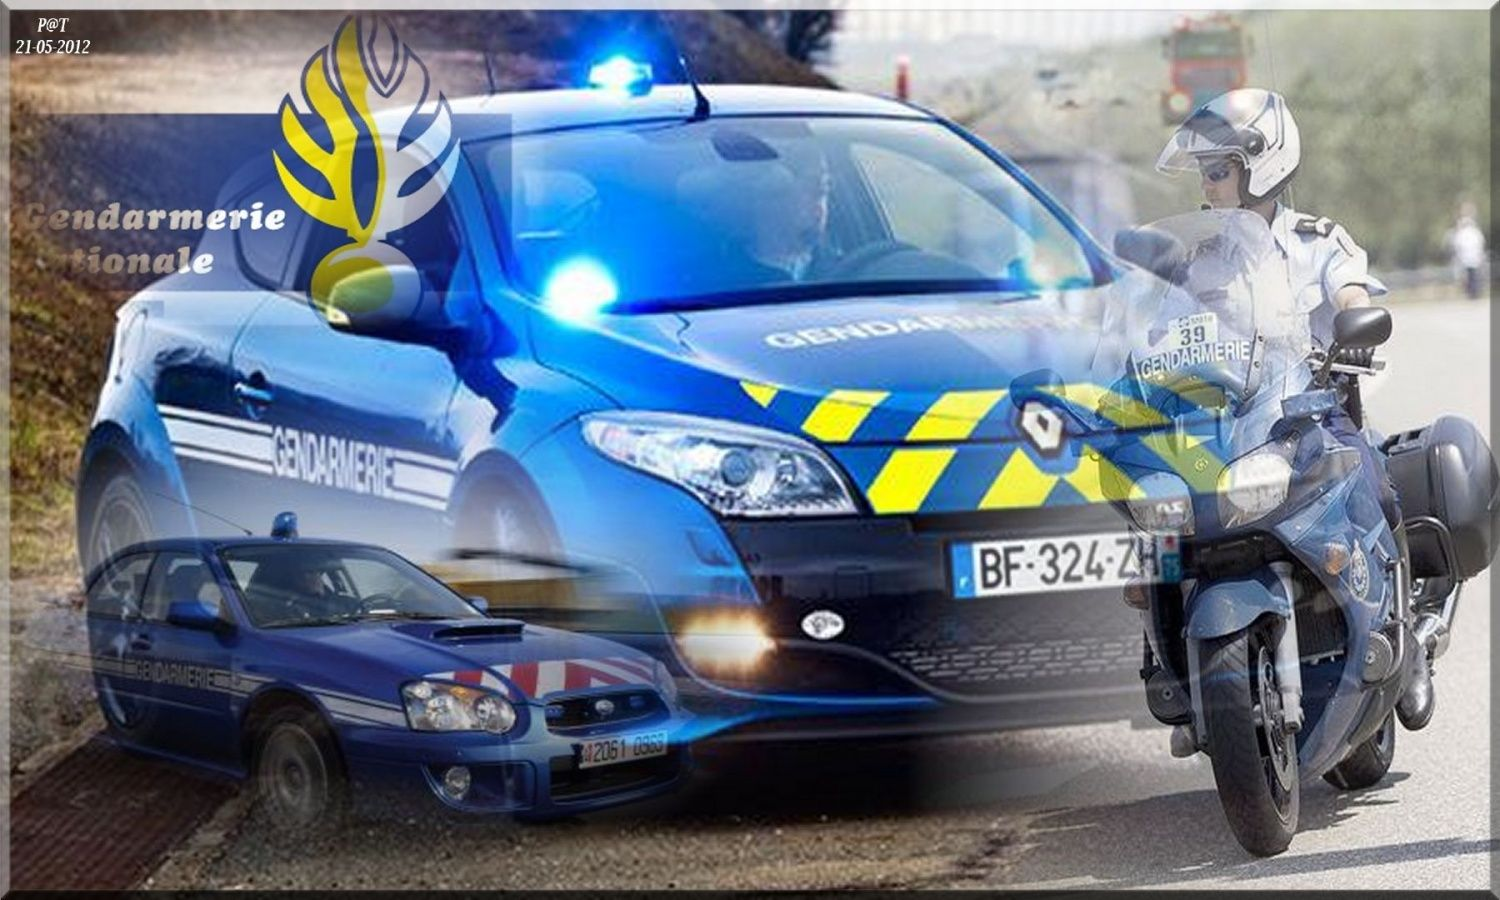 photos de gendarmerie nationale  u00e0 ville en tardenois 51170